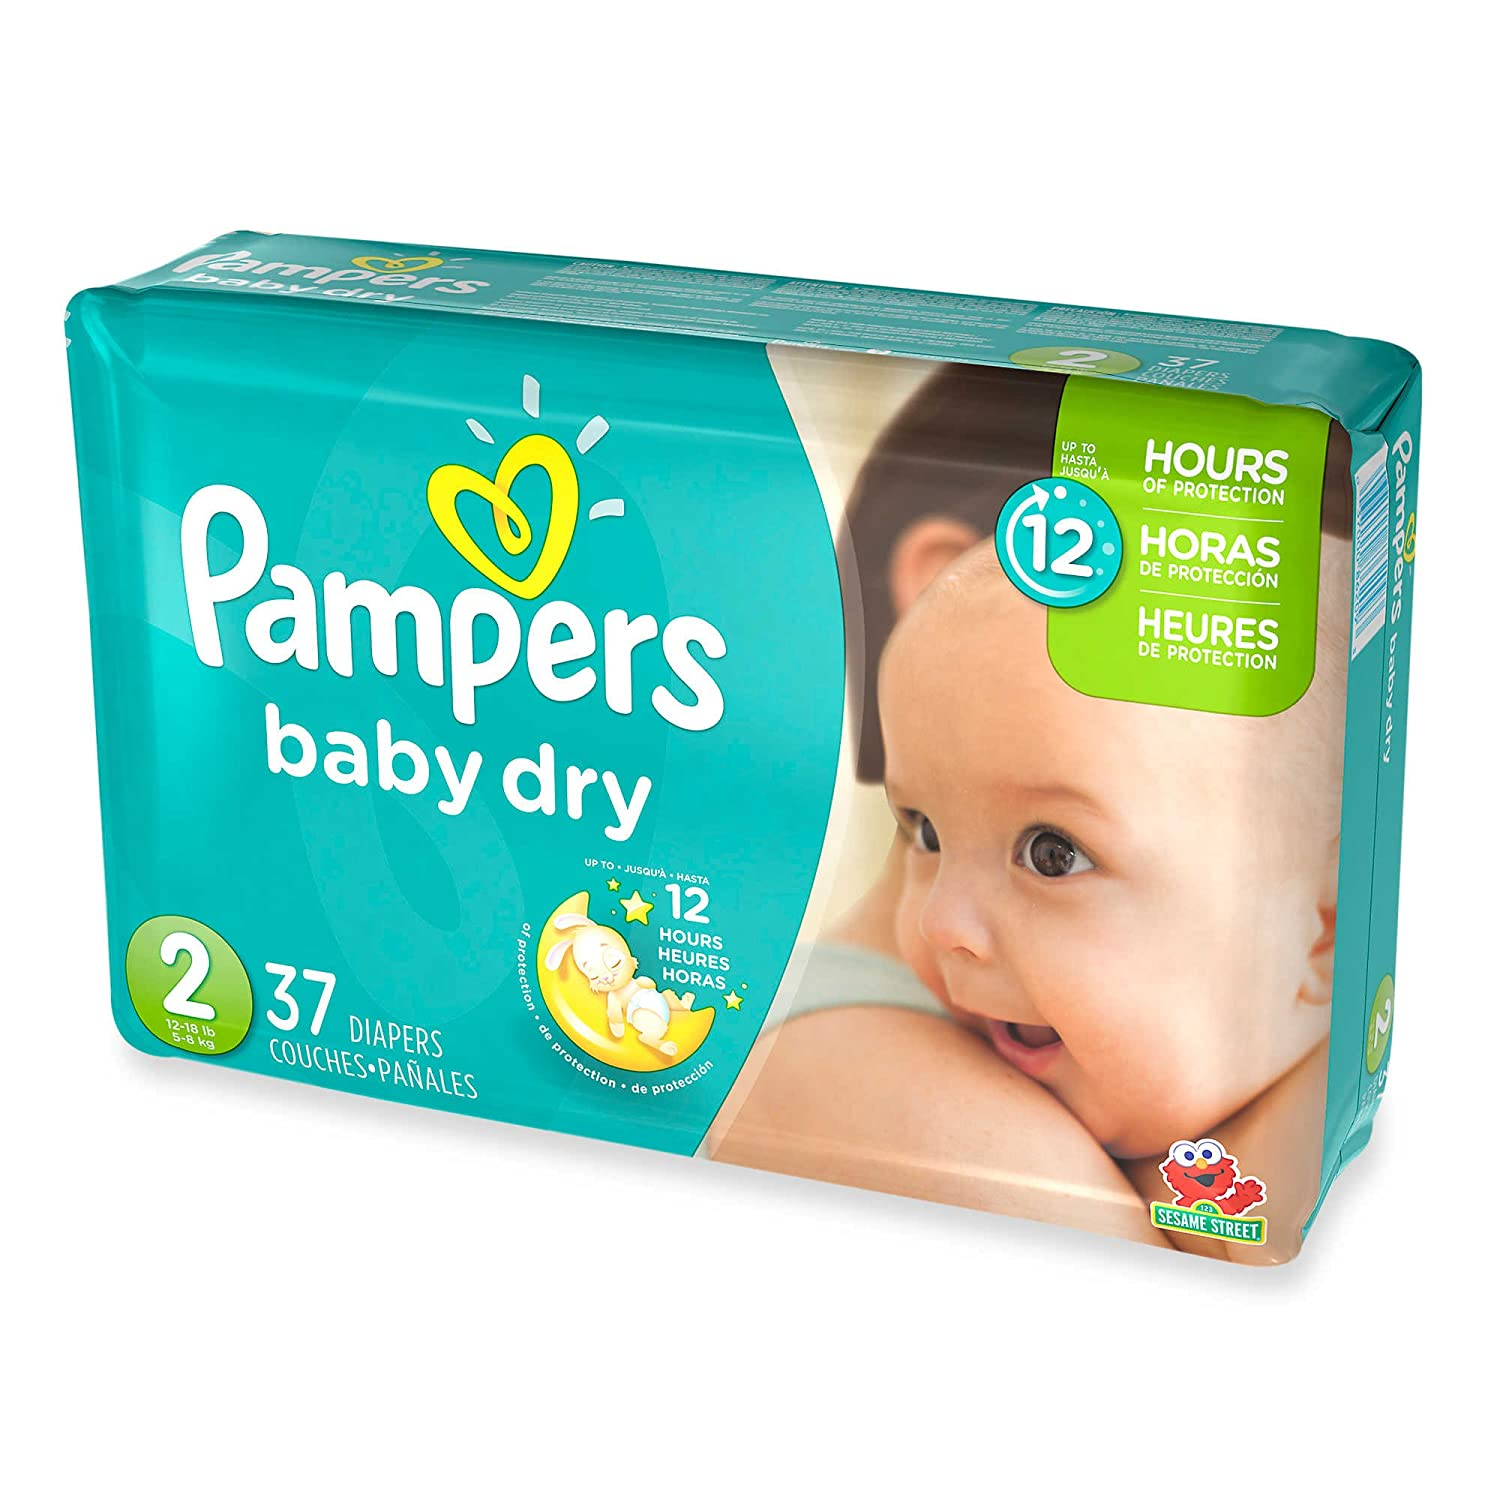 3 Layers Of Protection, Jumbo Pack Size 2 Disposable Diapers, (37-Count) Pampers